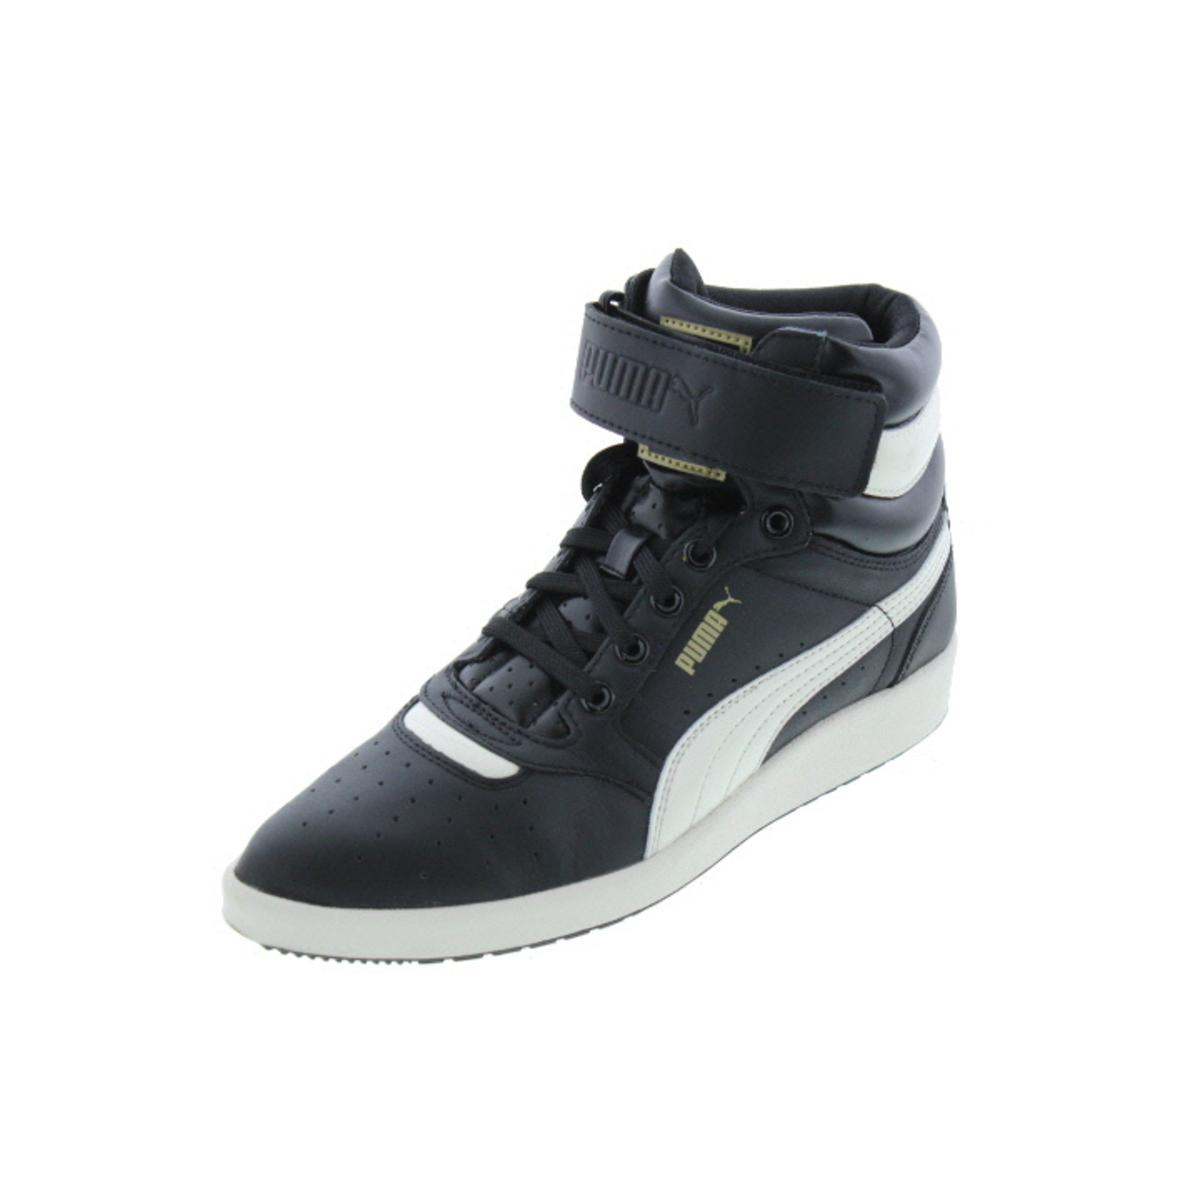 6248 womens sky point leather mid top fashion